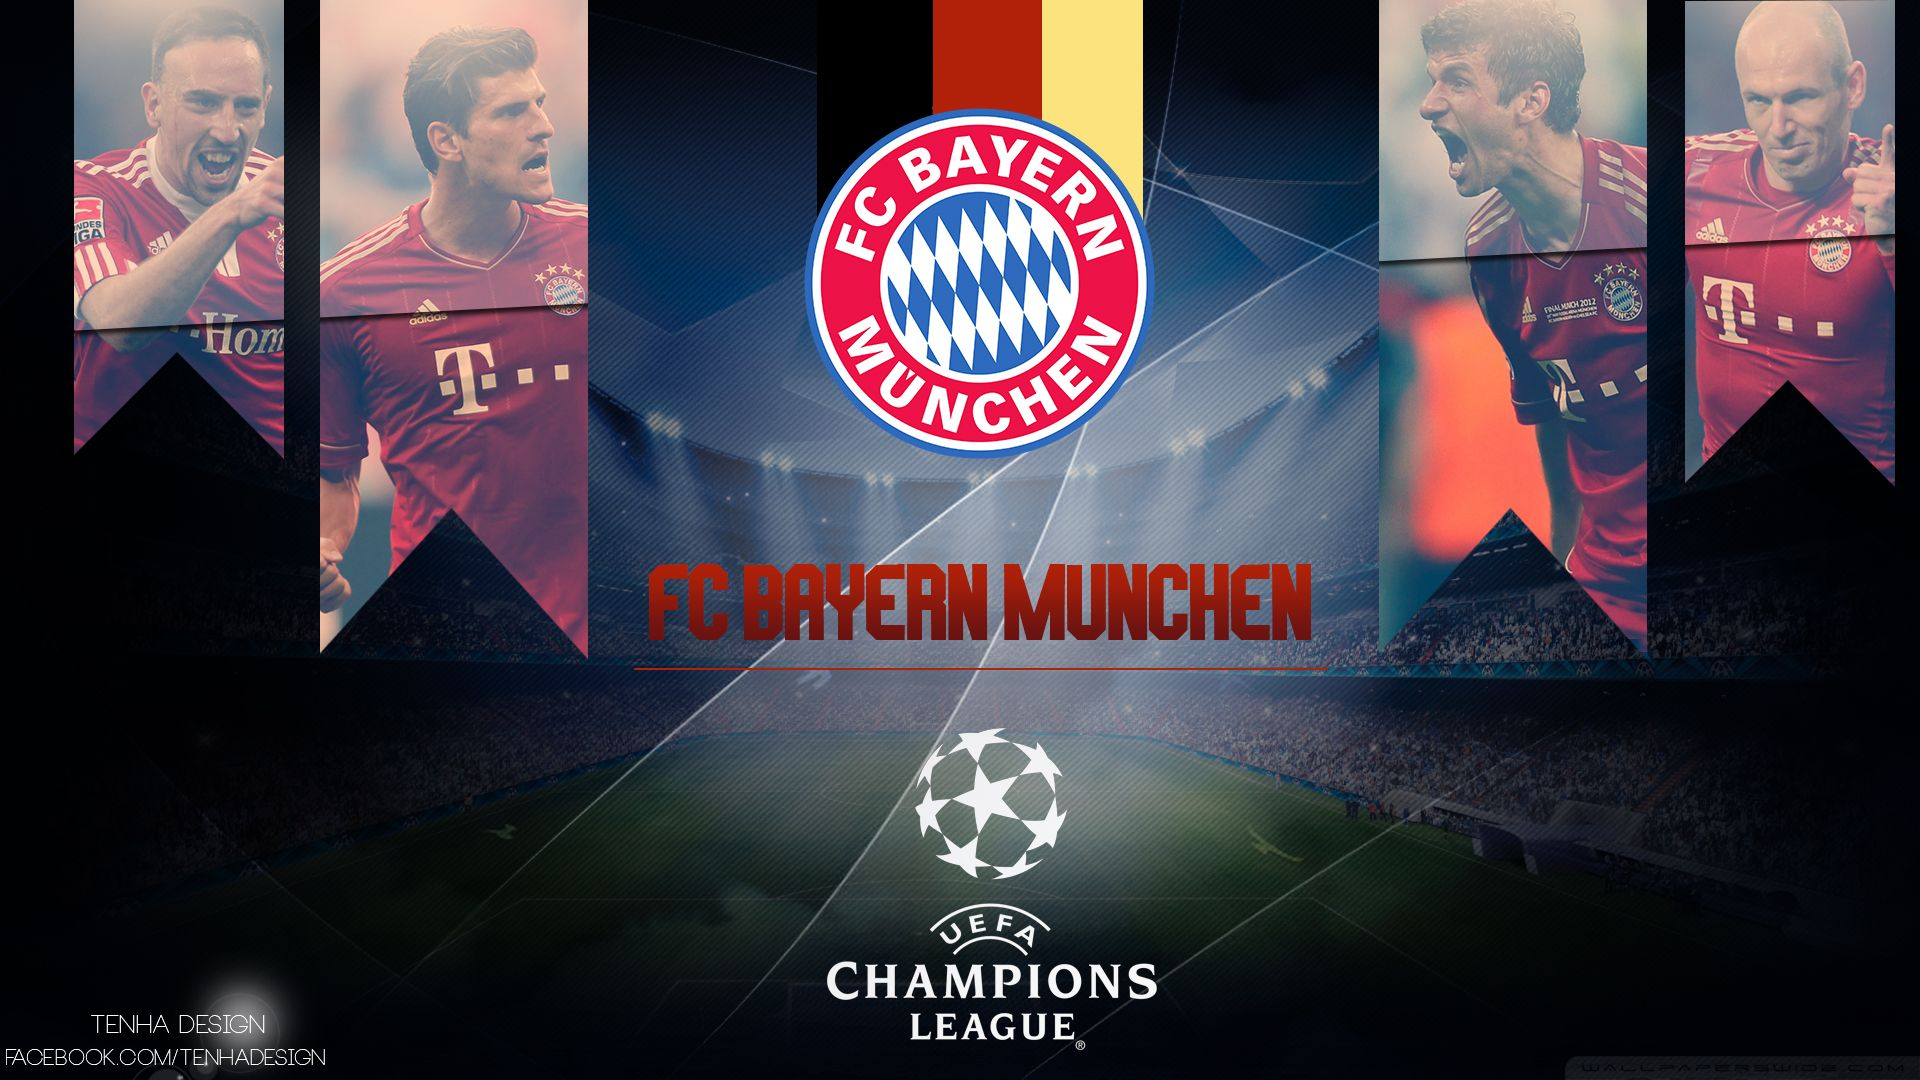 Bayern Munich Uefa Final Wembley 2o13 Hd Desktop Wallpaper 1080p Games Fc Bayern Munich